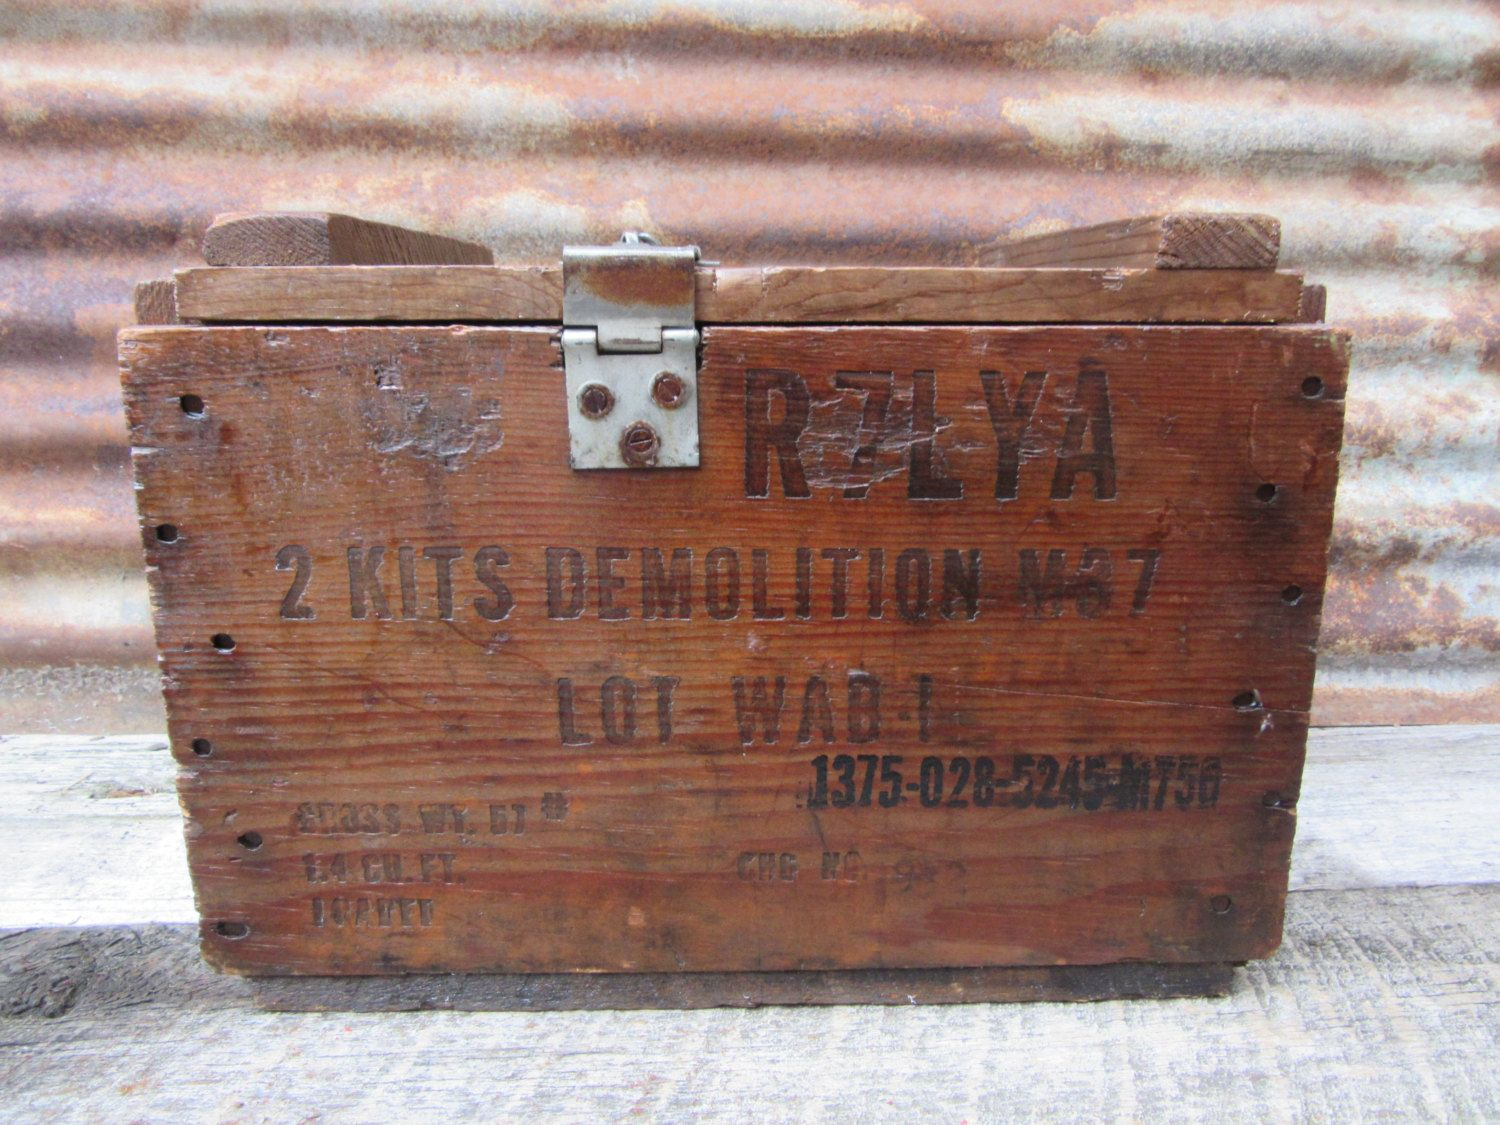 b7295bd51405171b21e4423cdc6b1f75 antique explosives crate box demolition m37 wood trunk rope Old Fuse Box Parts at n-0.co